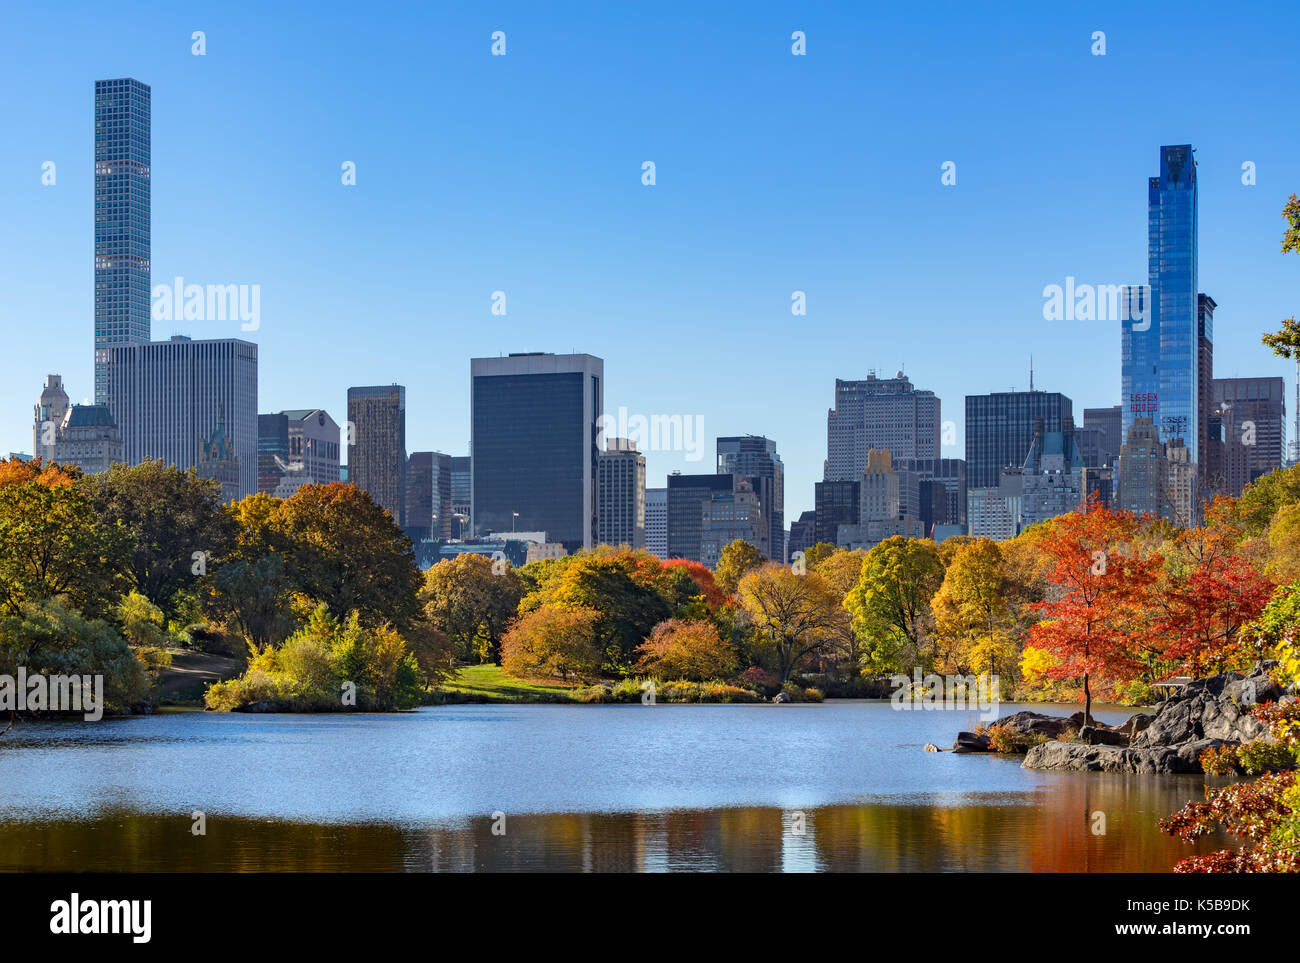 Fall in Central Park by the Lake with Midtown skyscrapers. New York City - Stock Image